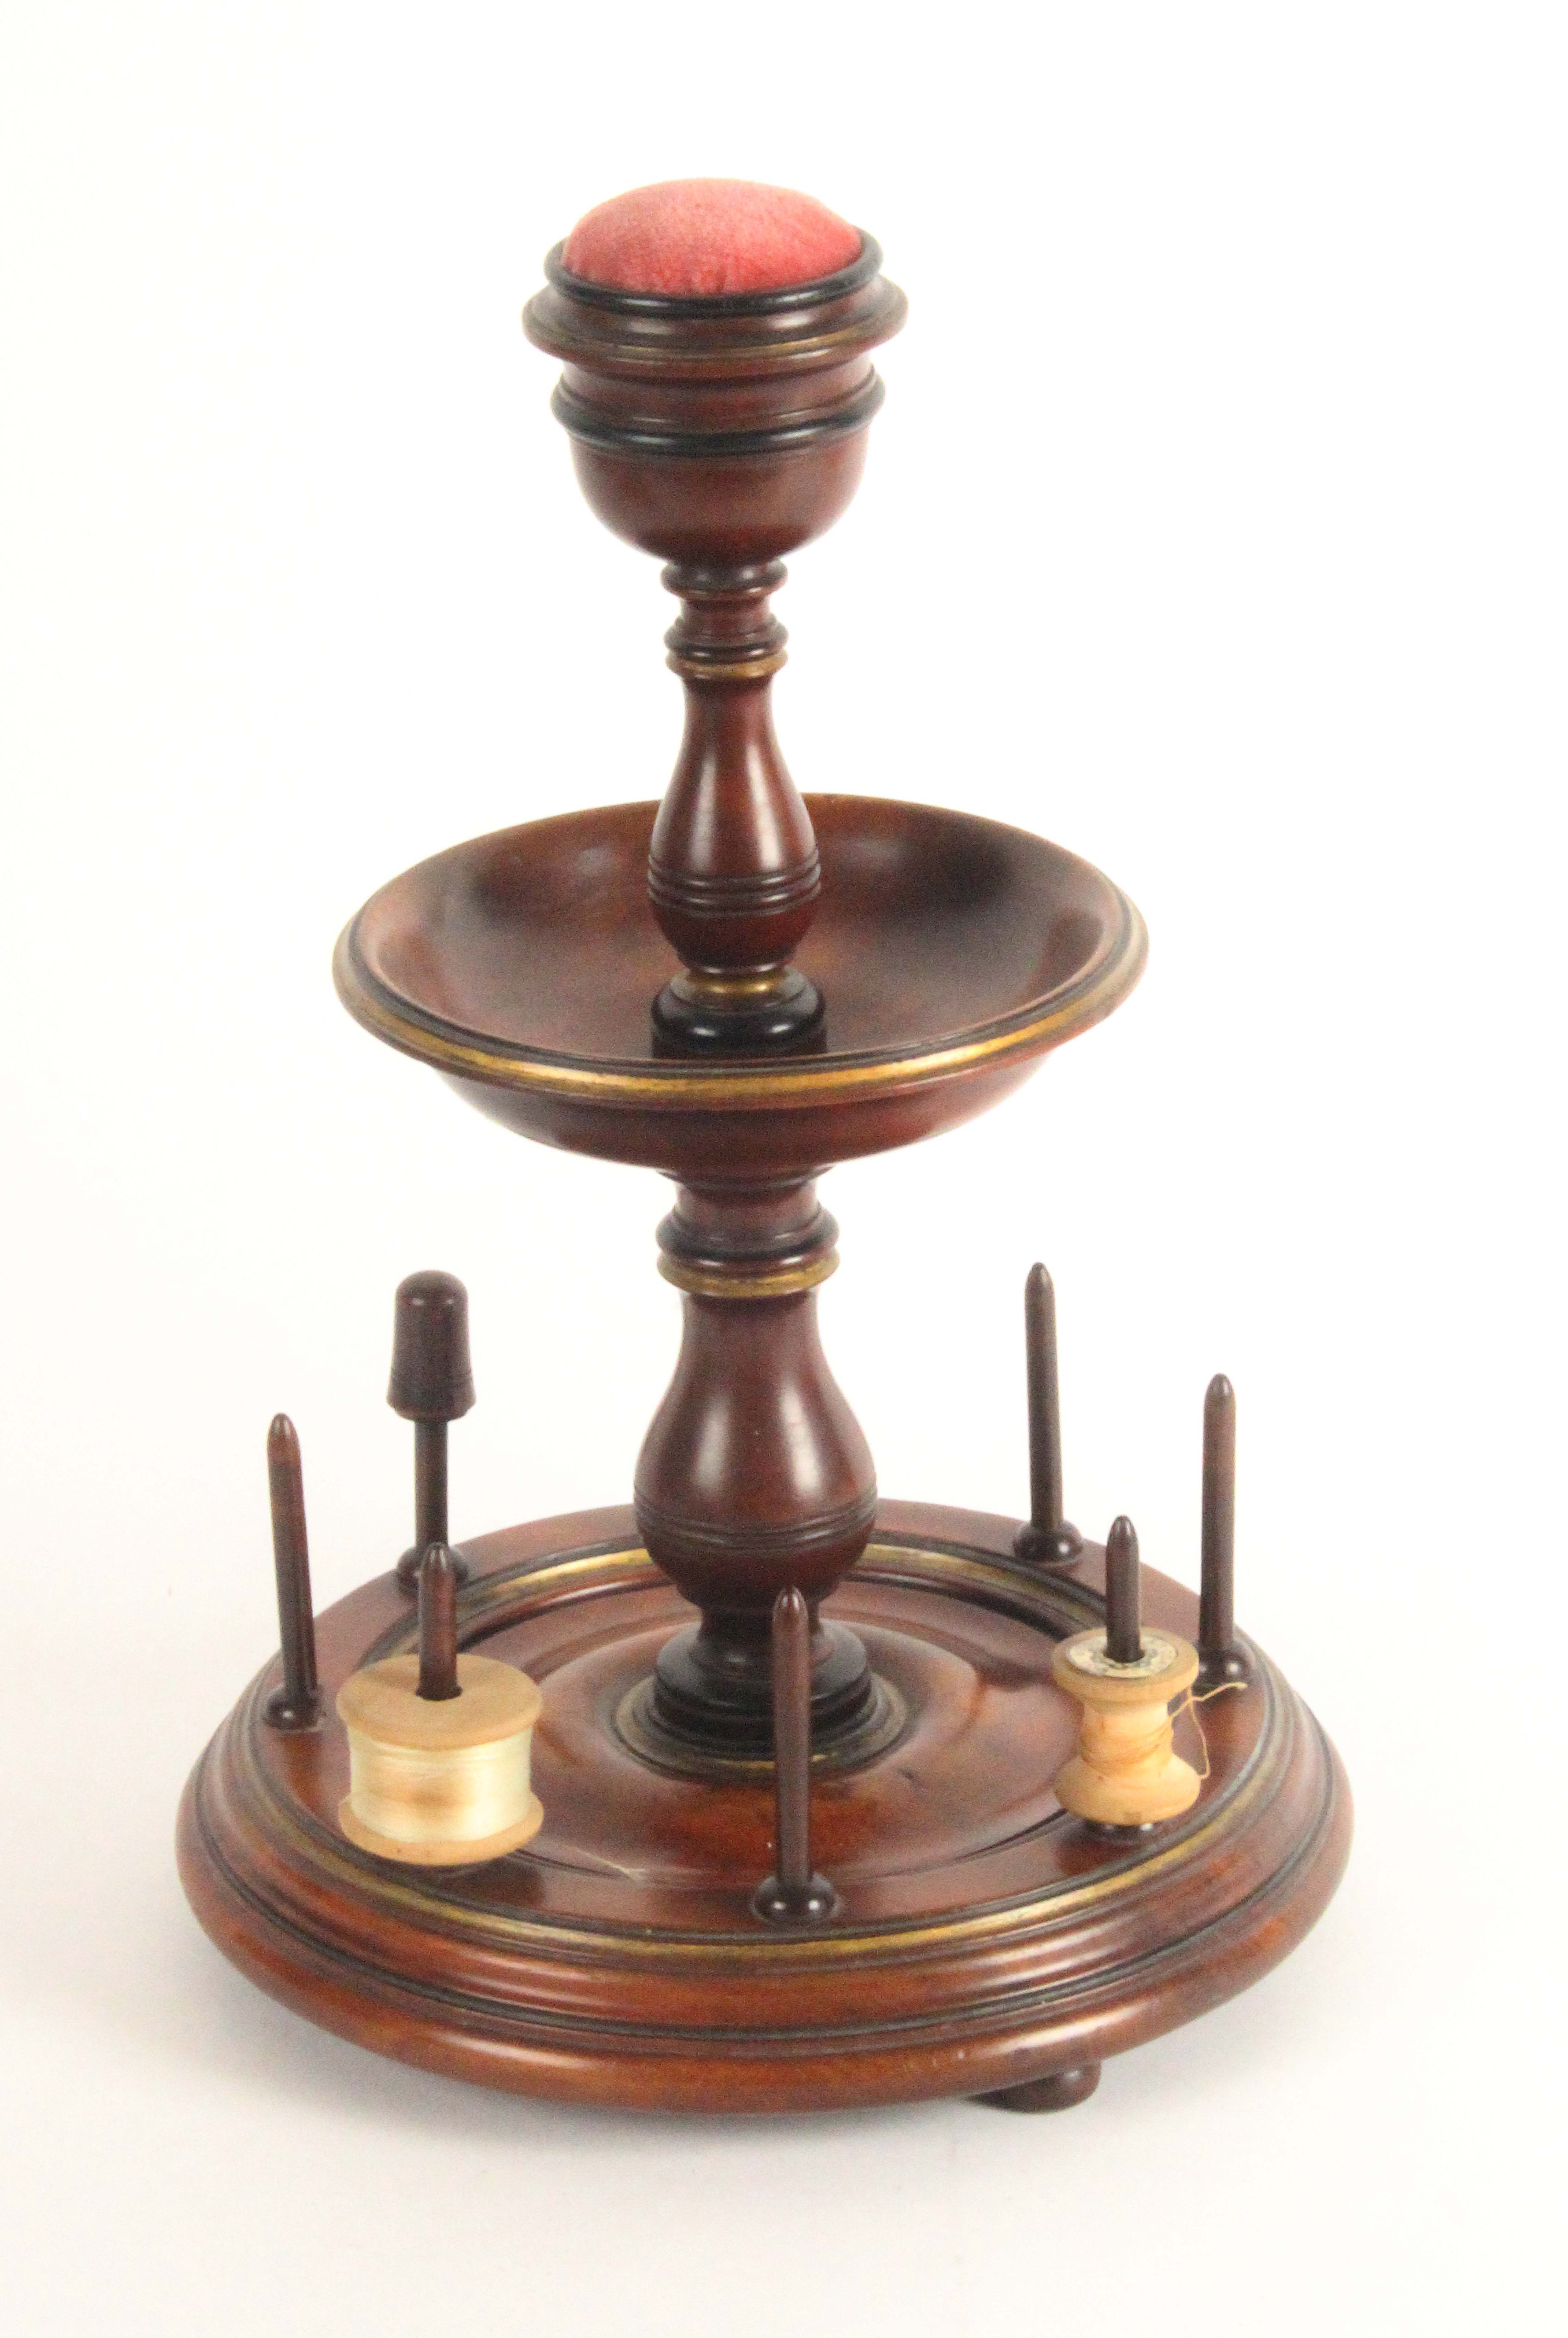 A mahogany reel stand, circa 1840, the turned circular base on three bun feet with seven reel spikes